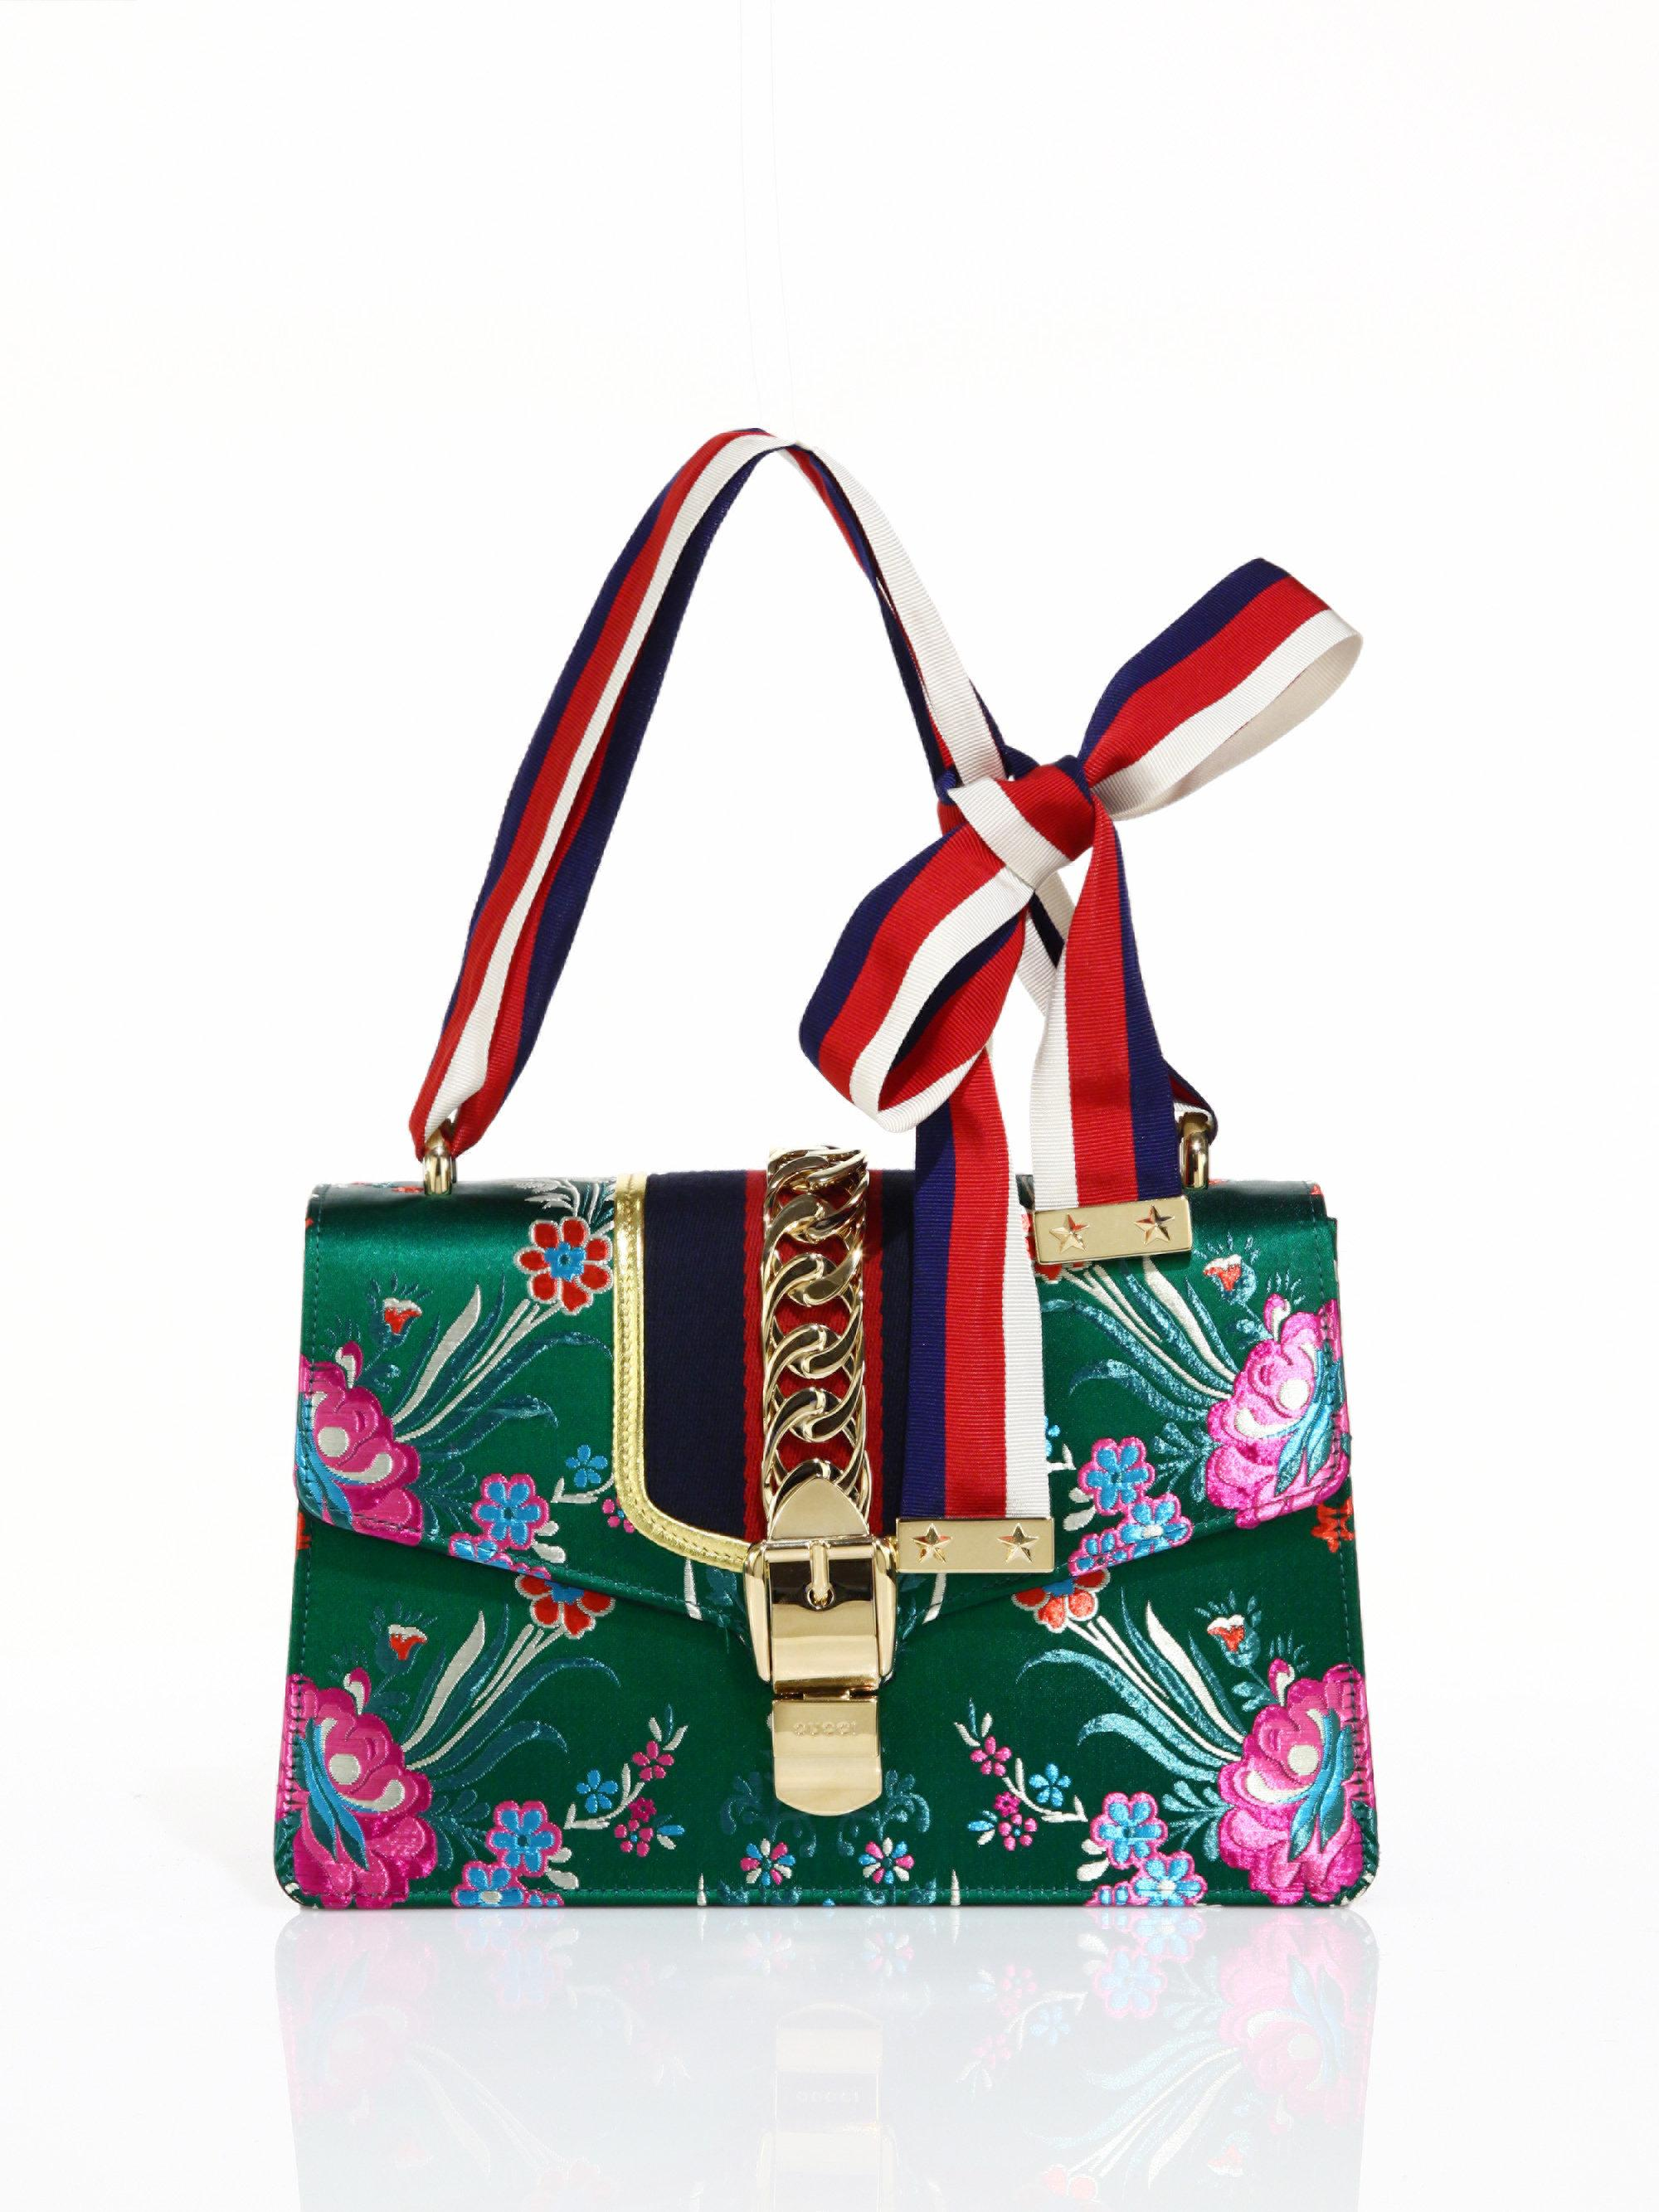 aa060c2ee Gucci Sylvie Floral Jacquard Shoulder Bag in Green - Lyst